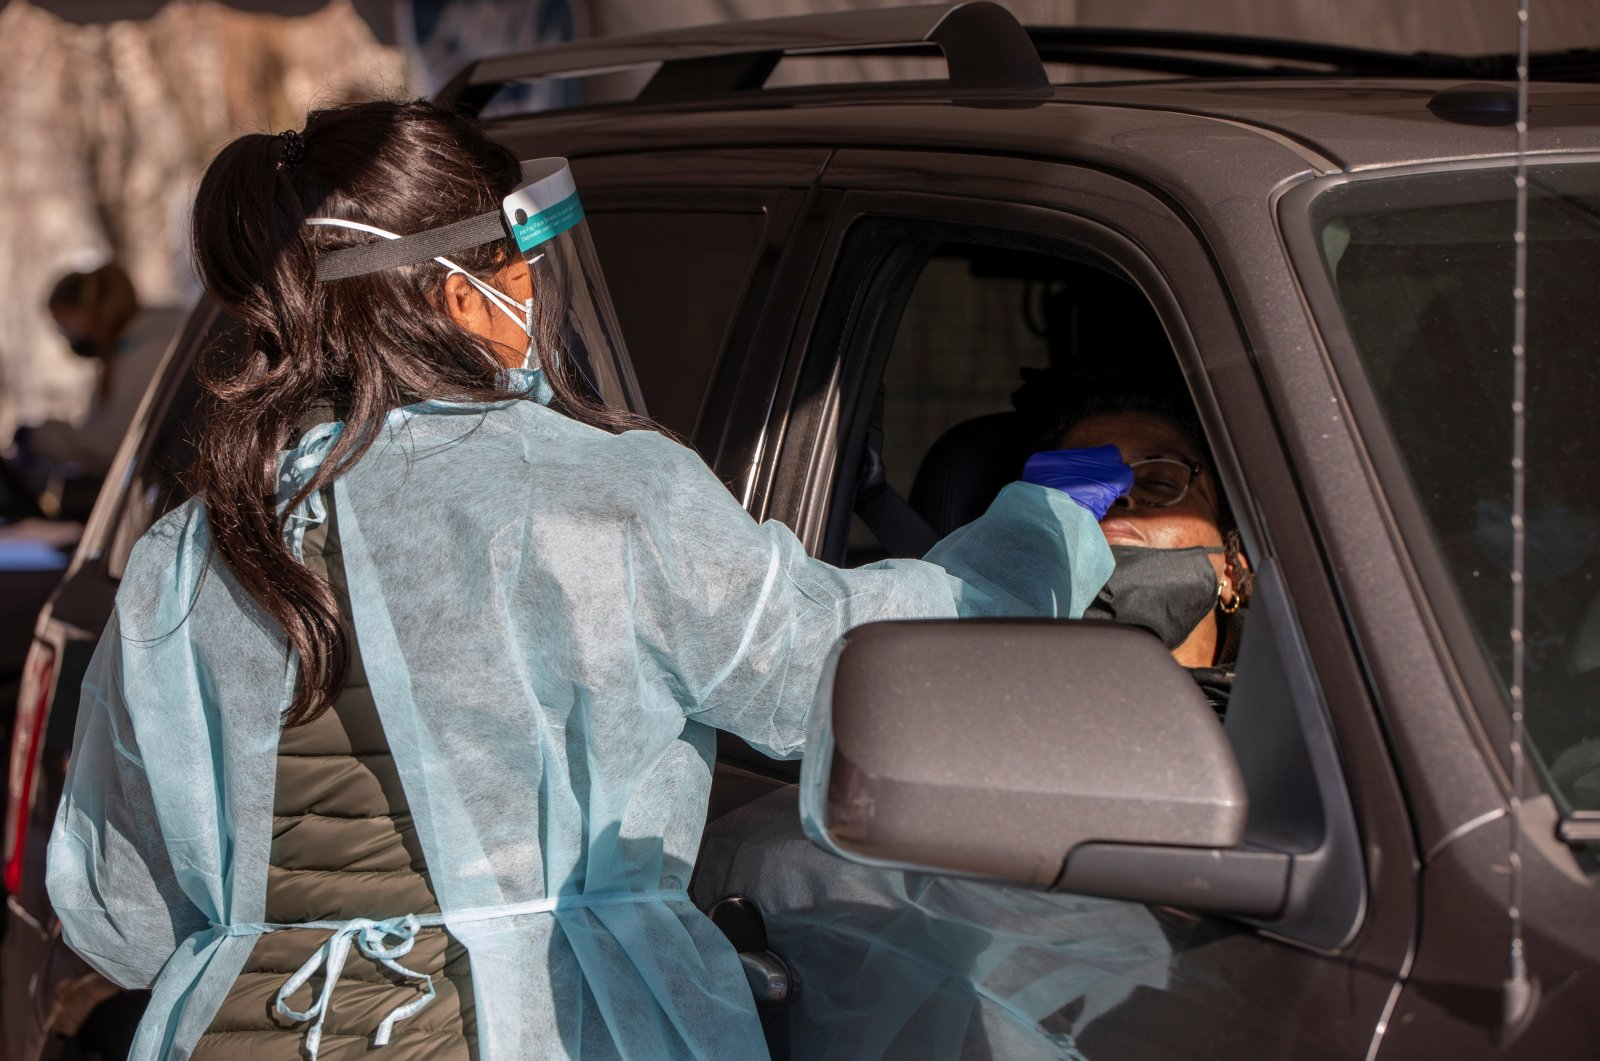 A nurse administers a COVID-19 test at a drive-thru event targeting underserved communities on Martin Luther King day in Philadelphia, Pennsylvania, U.S., Jan. 18, 2021. (Reuters Photo)